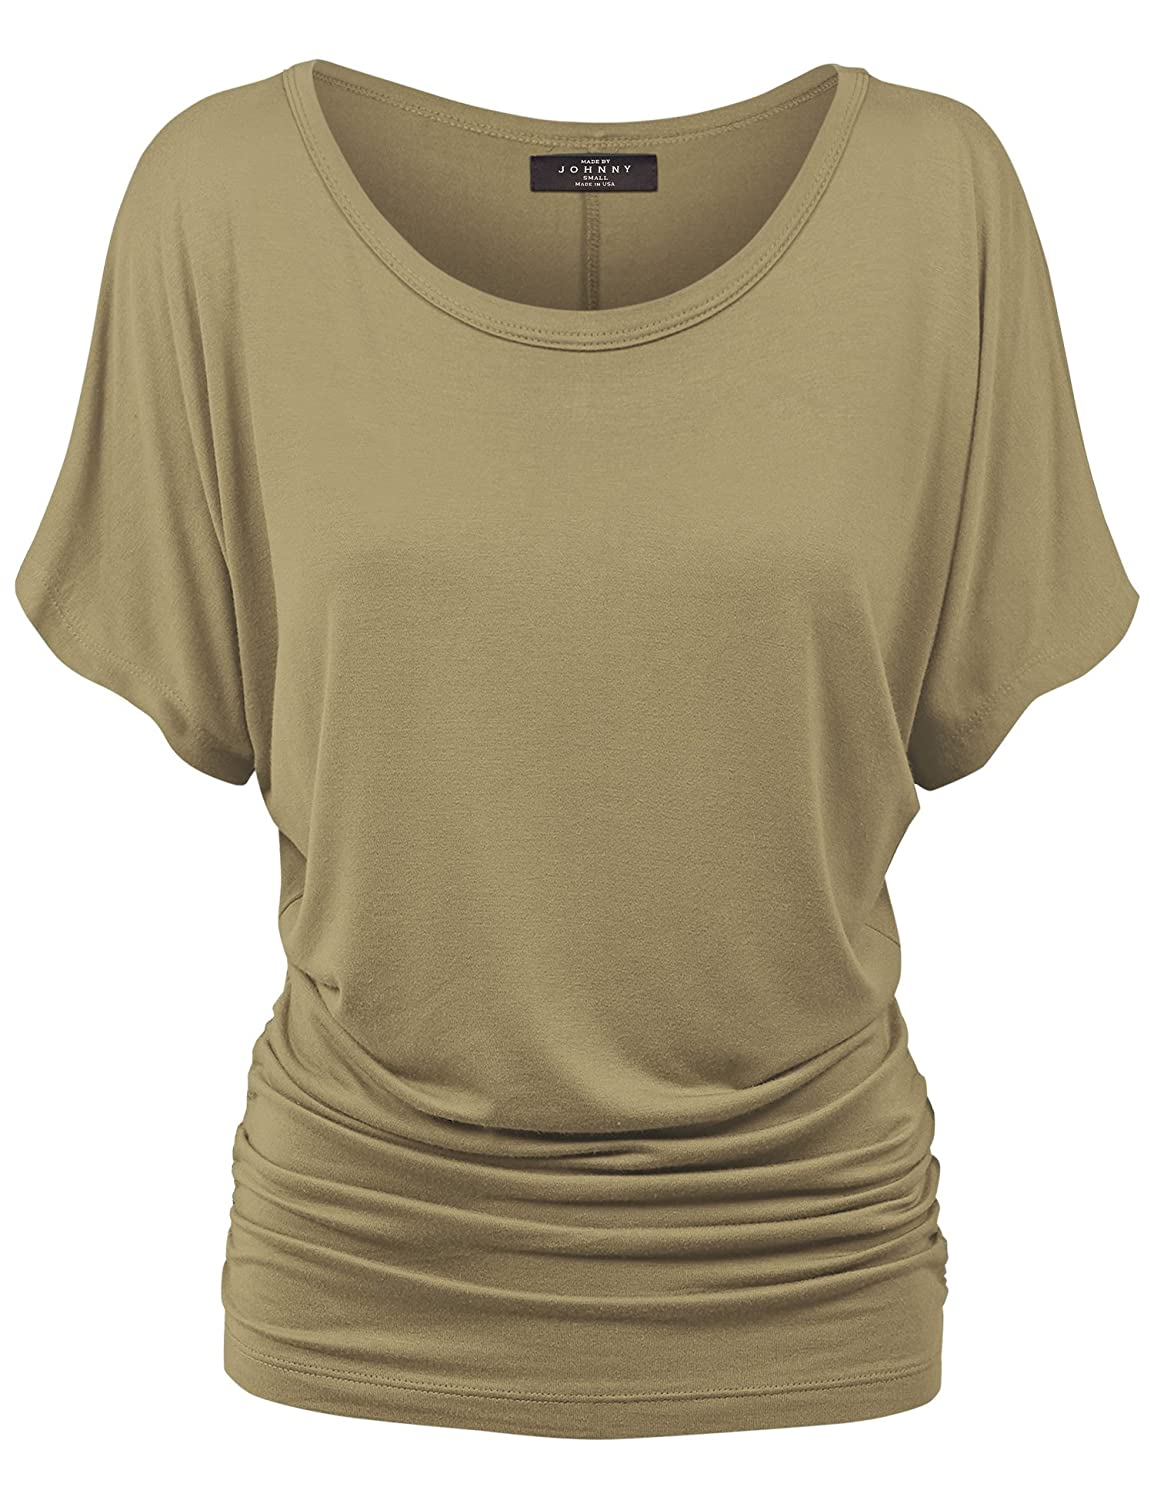 ab03bc95270 Made By Johnny MBJ WT817 Womens Dolman Drape Top with Side Shirring XXXXXL  Taupe at Amazon Women s Clothing store